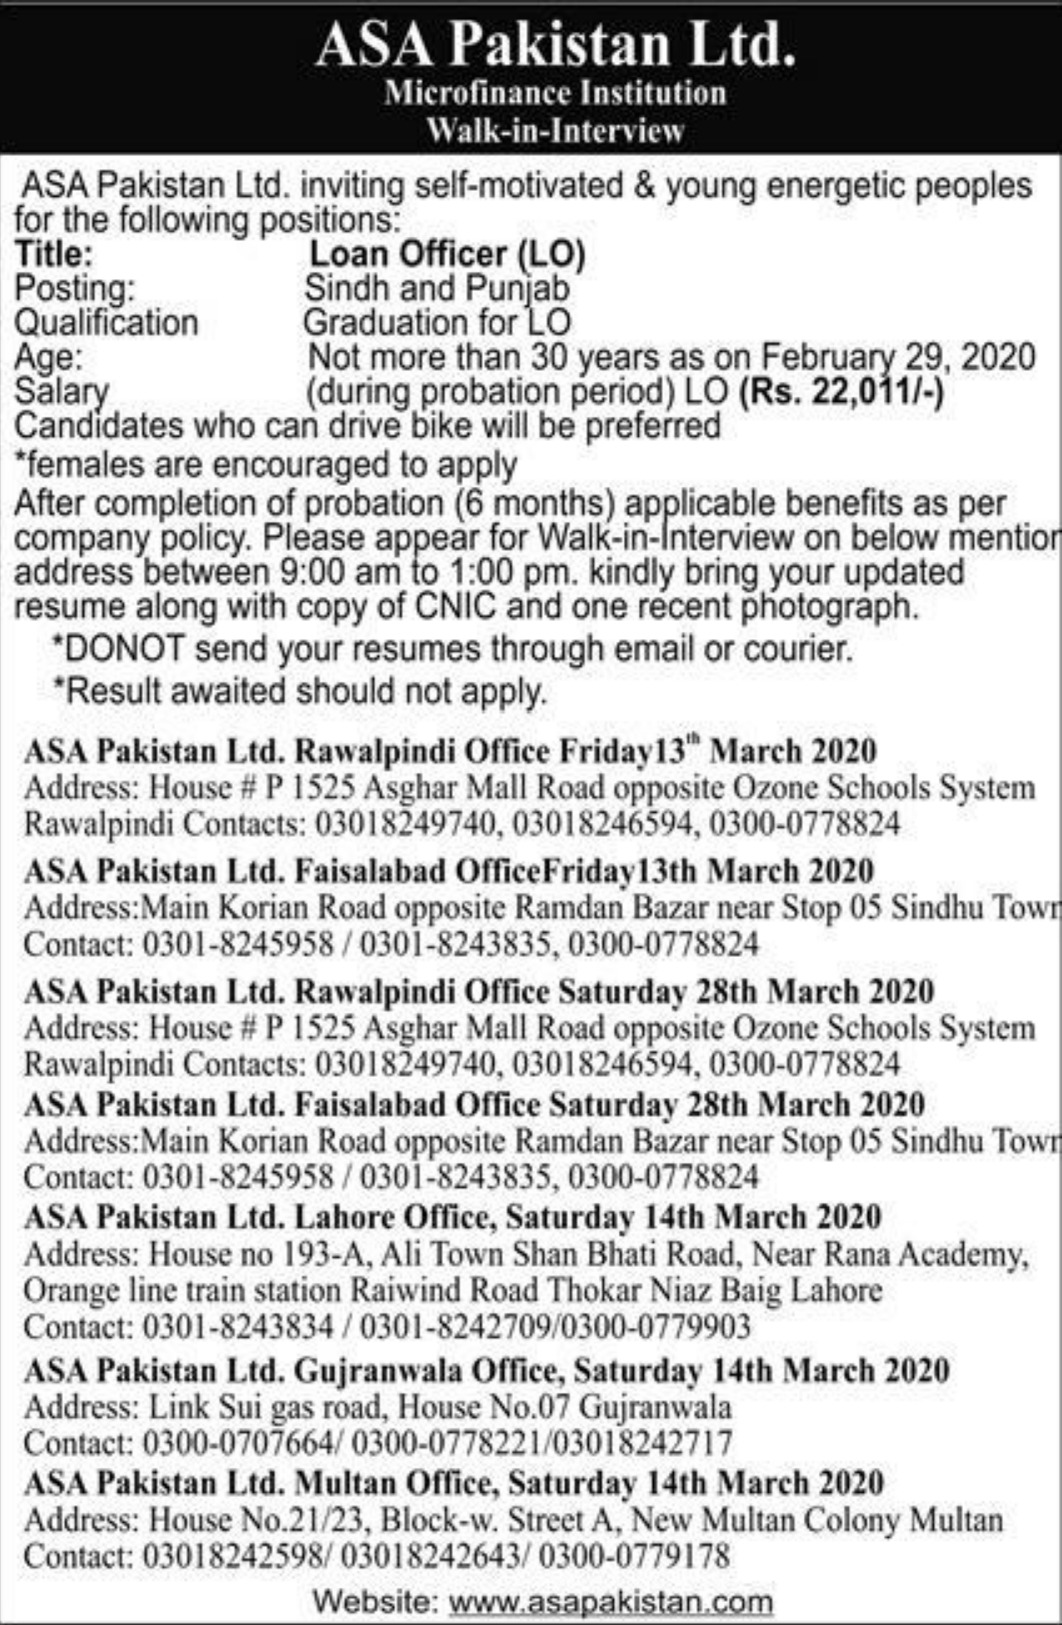 ASA Pakistan Ltd Jobs 2020 Walk-in-Interview